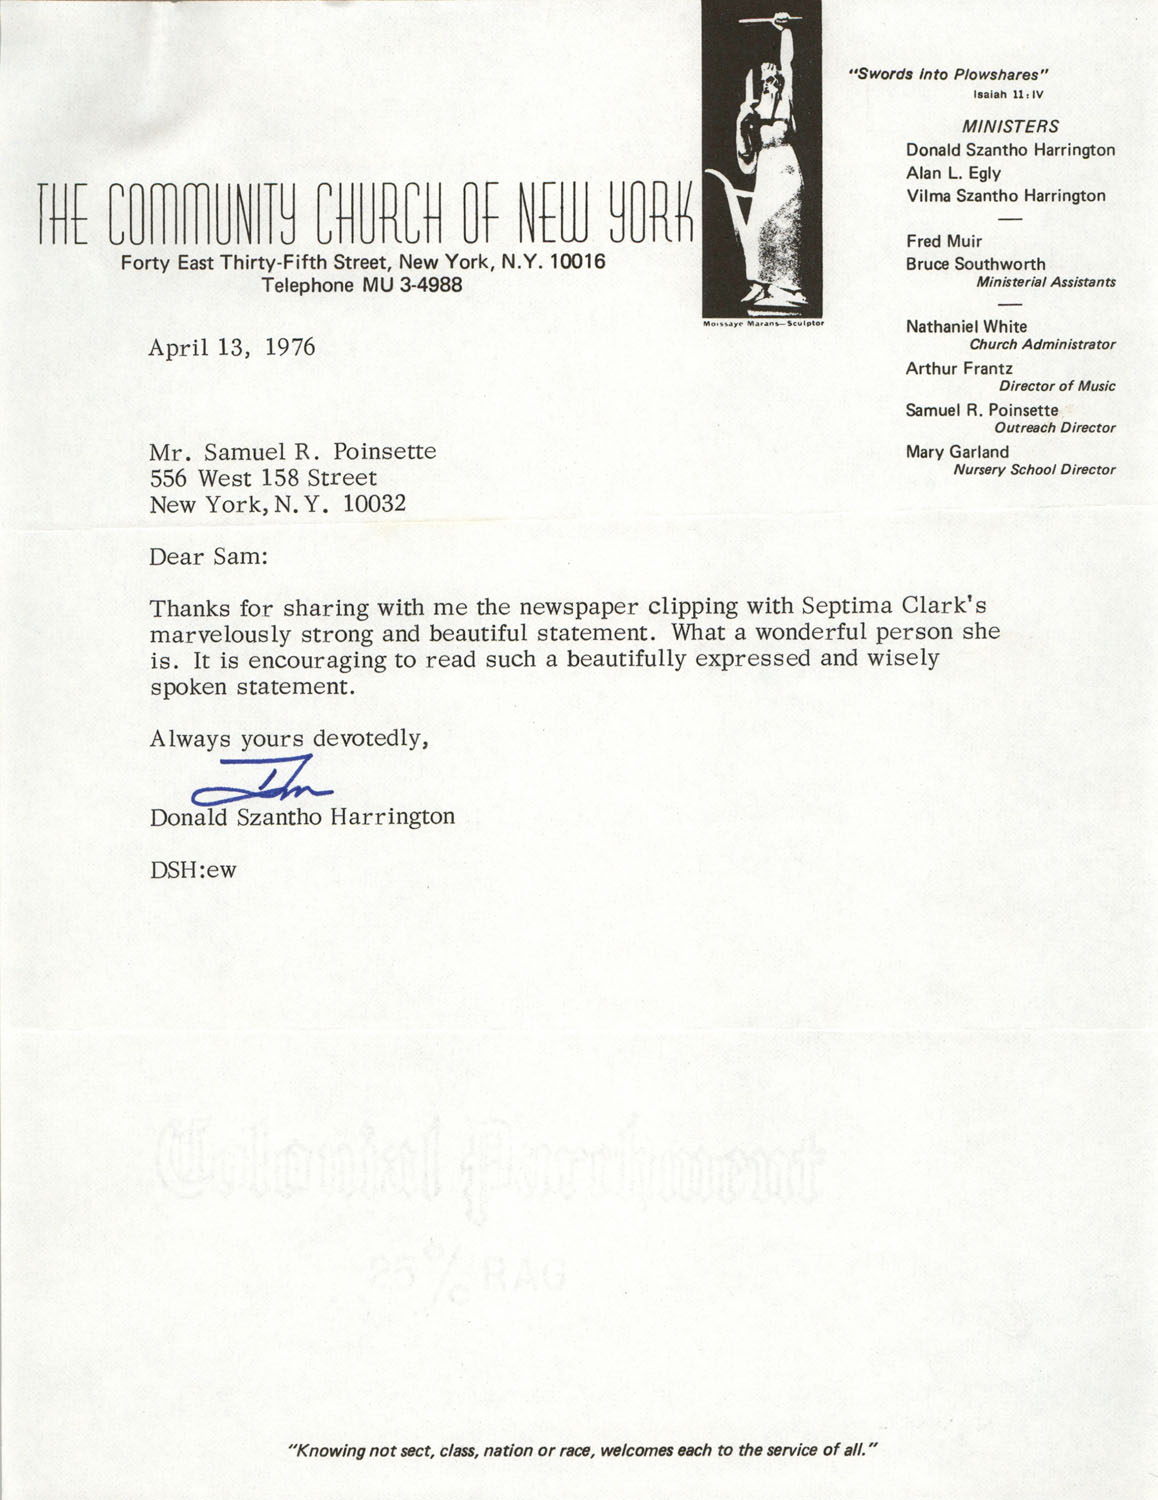 Letter from Donald Szantho Harrington to Samuel R. Poinsette, April 13, 1976